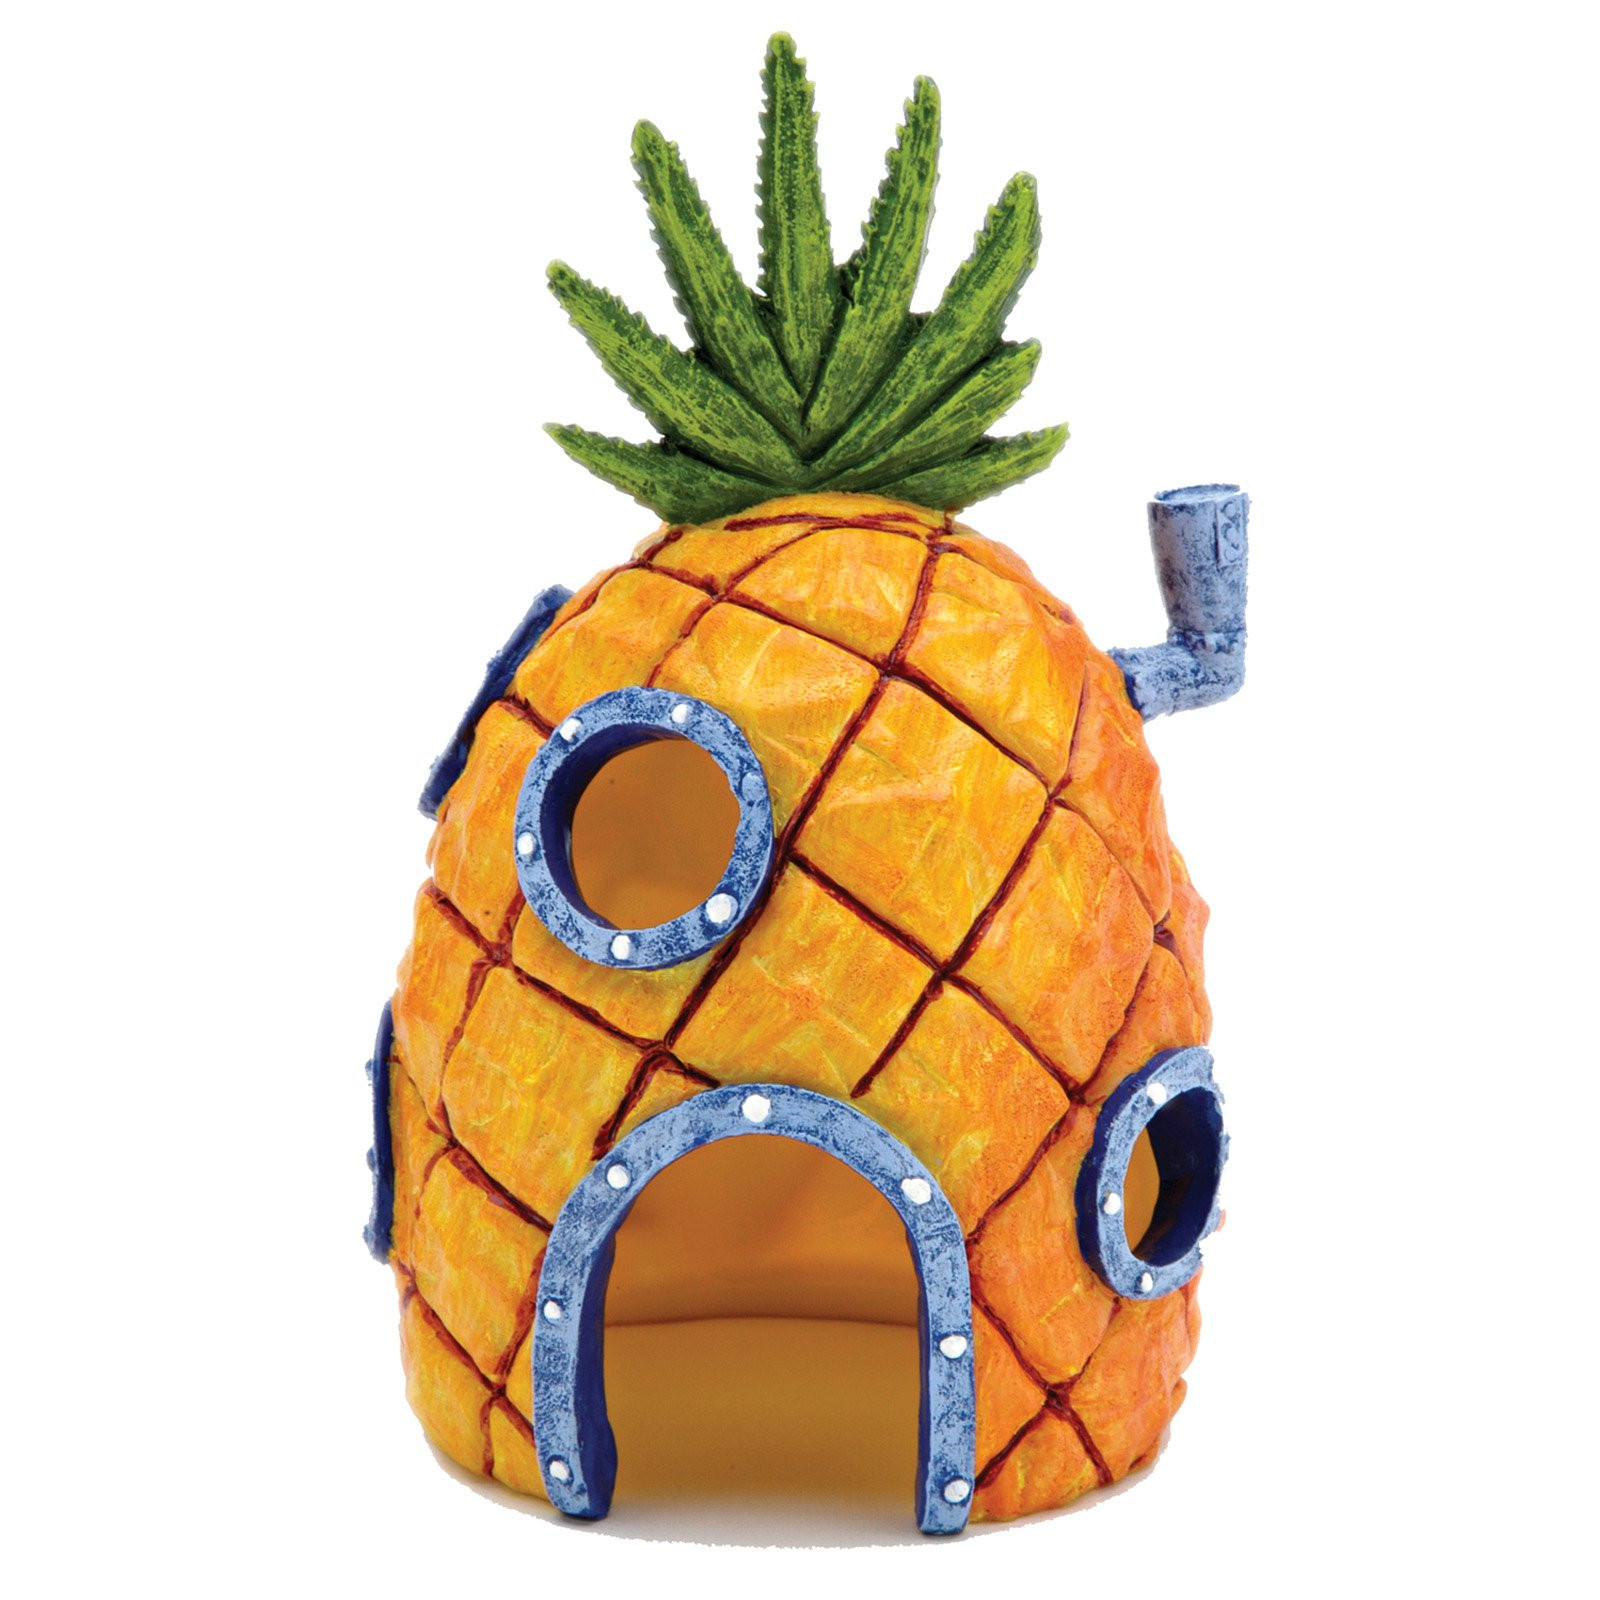 Penn-Plax SpongeBob Pineapple Home Aquarium Ornament, 6.5-in Image